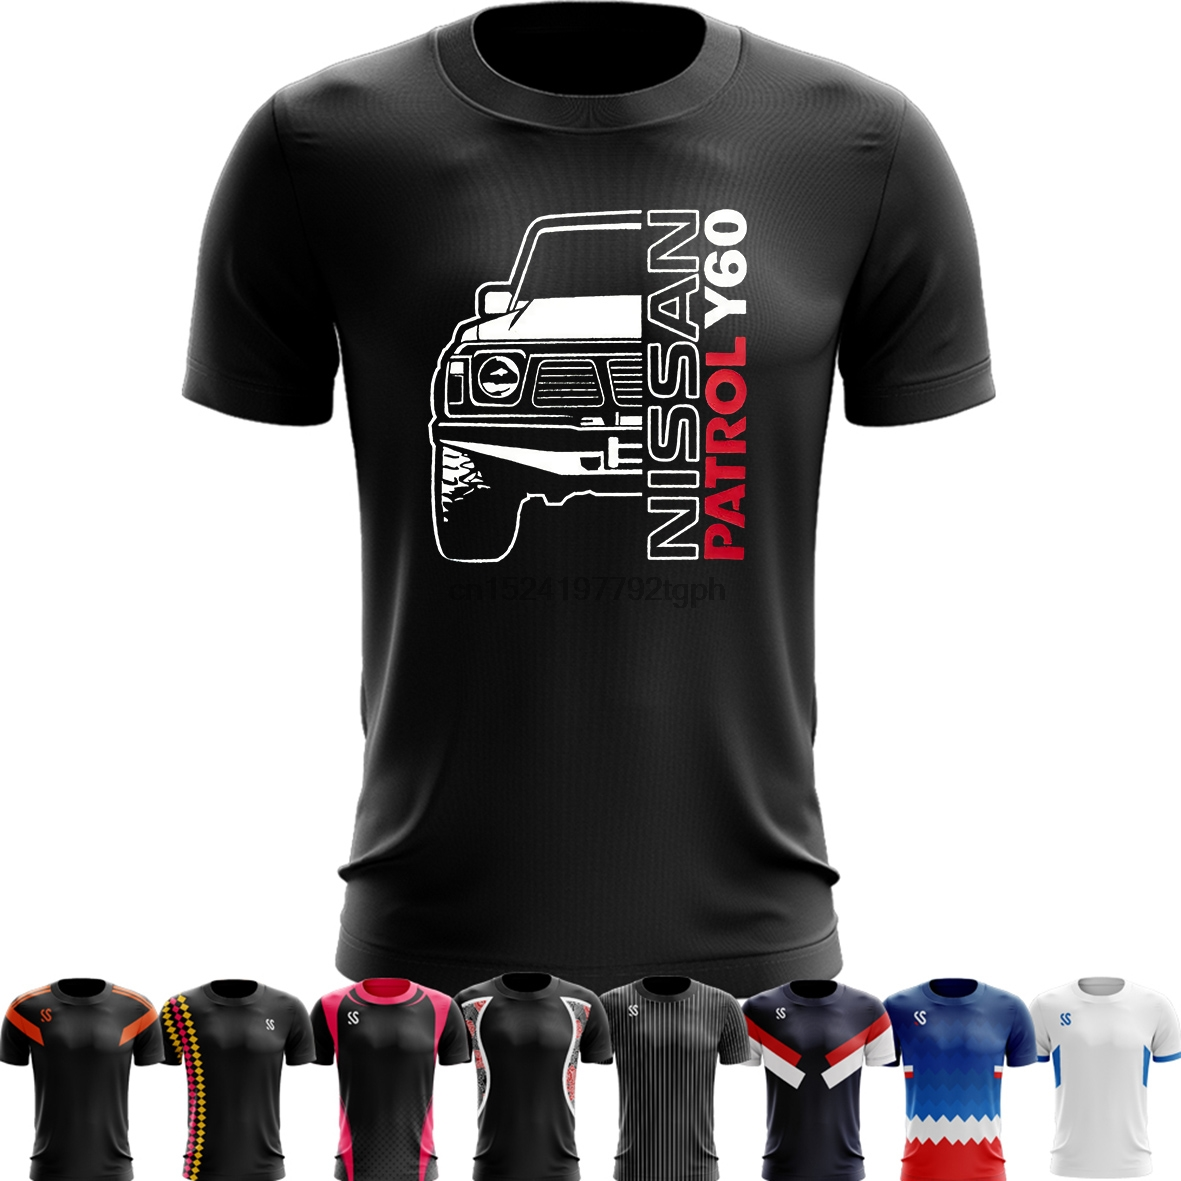 1 Nissan Patrol Premium Mens T-shirt Fashion Tee Shirt Casual Funny Tops Clothing Be Novel In Design